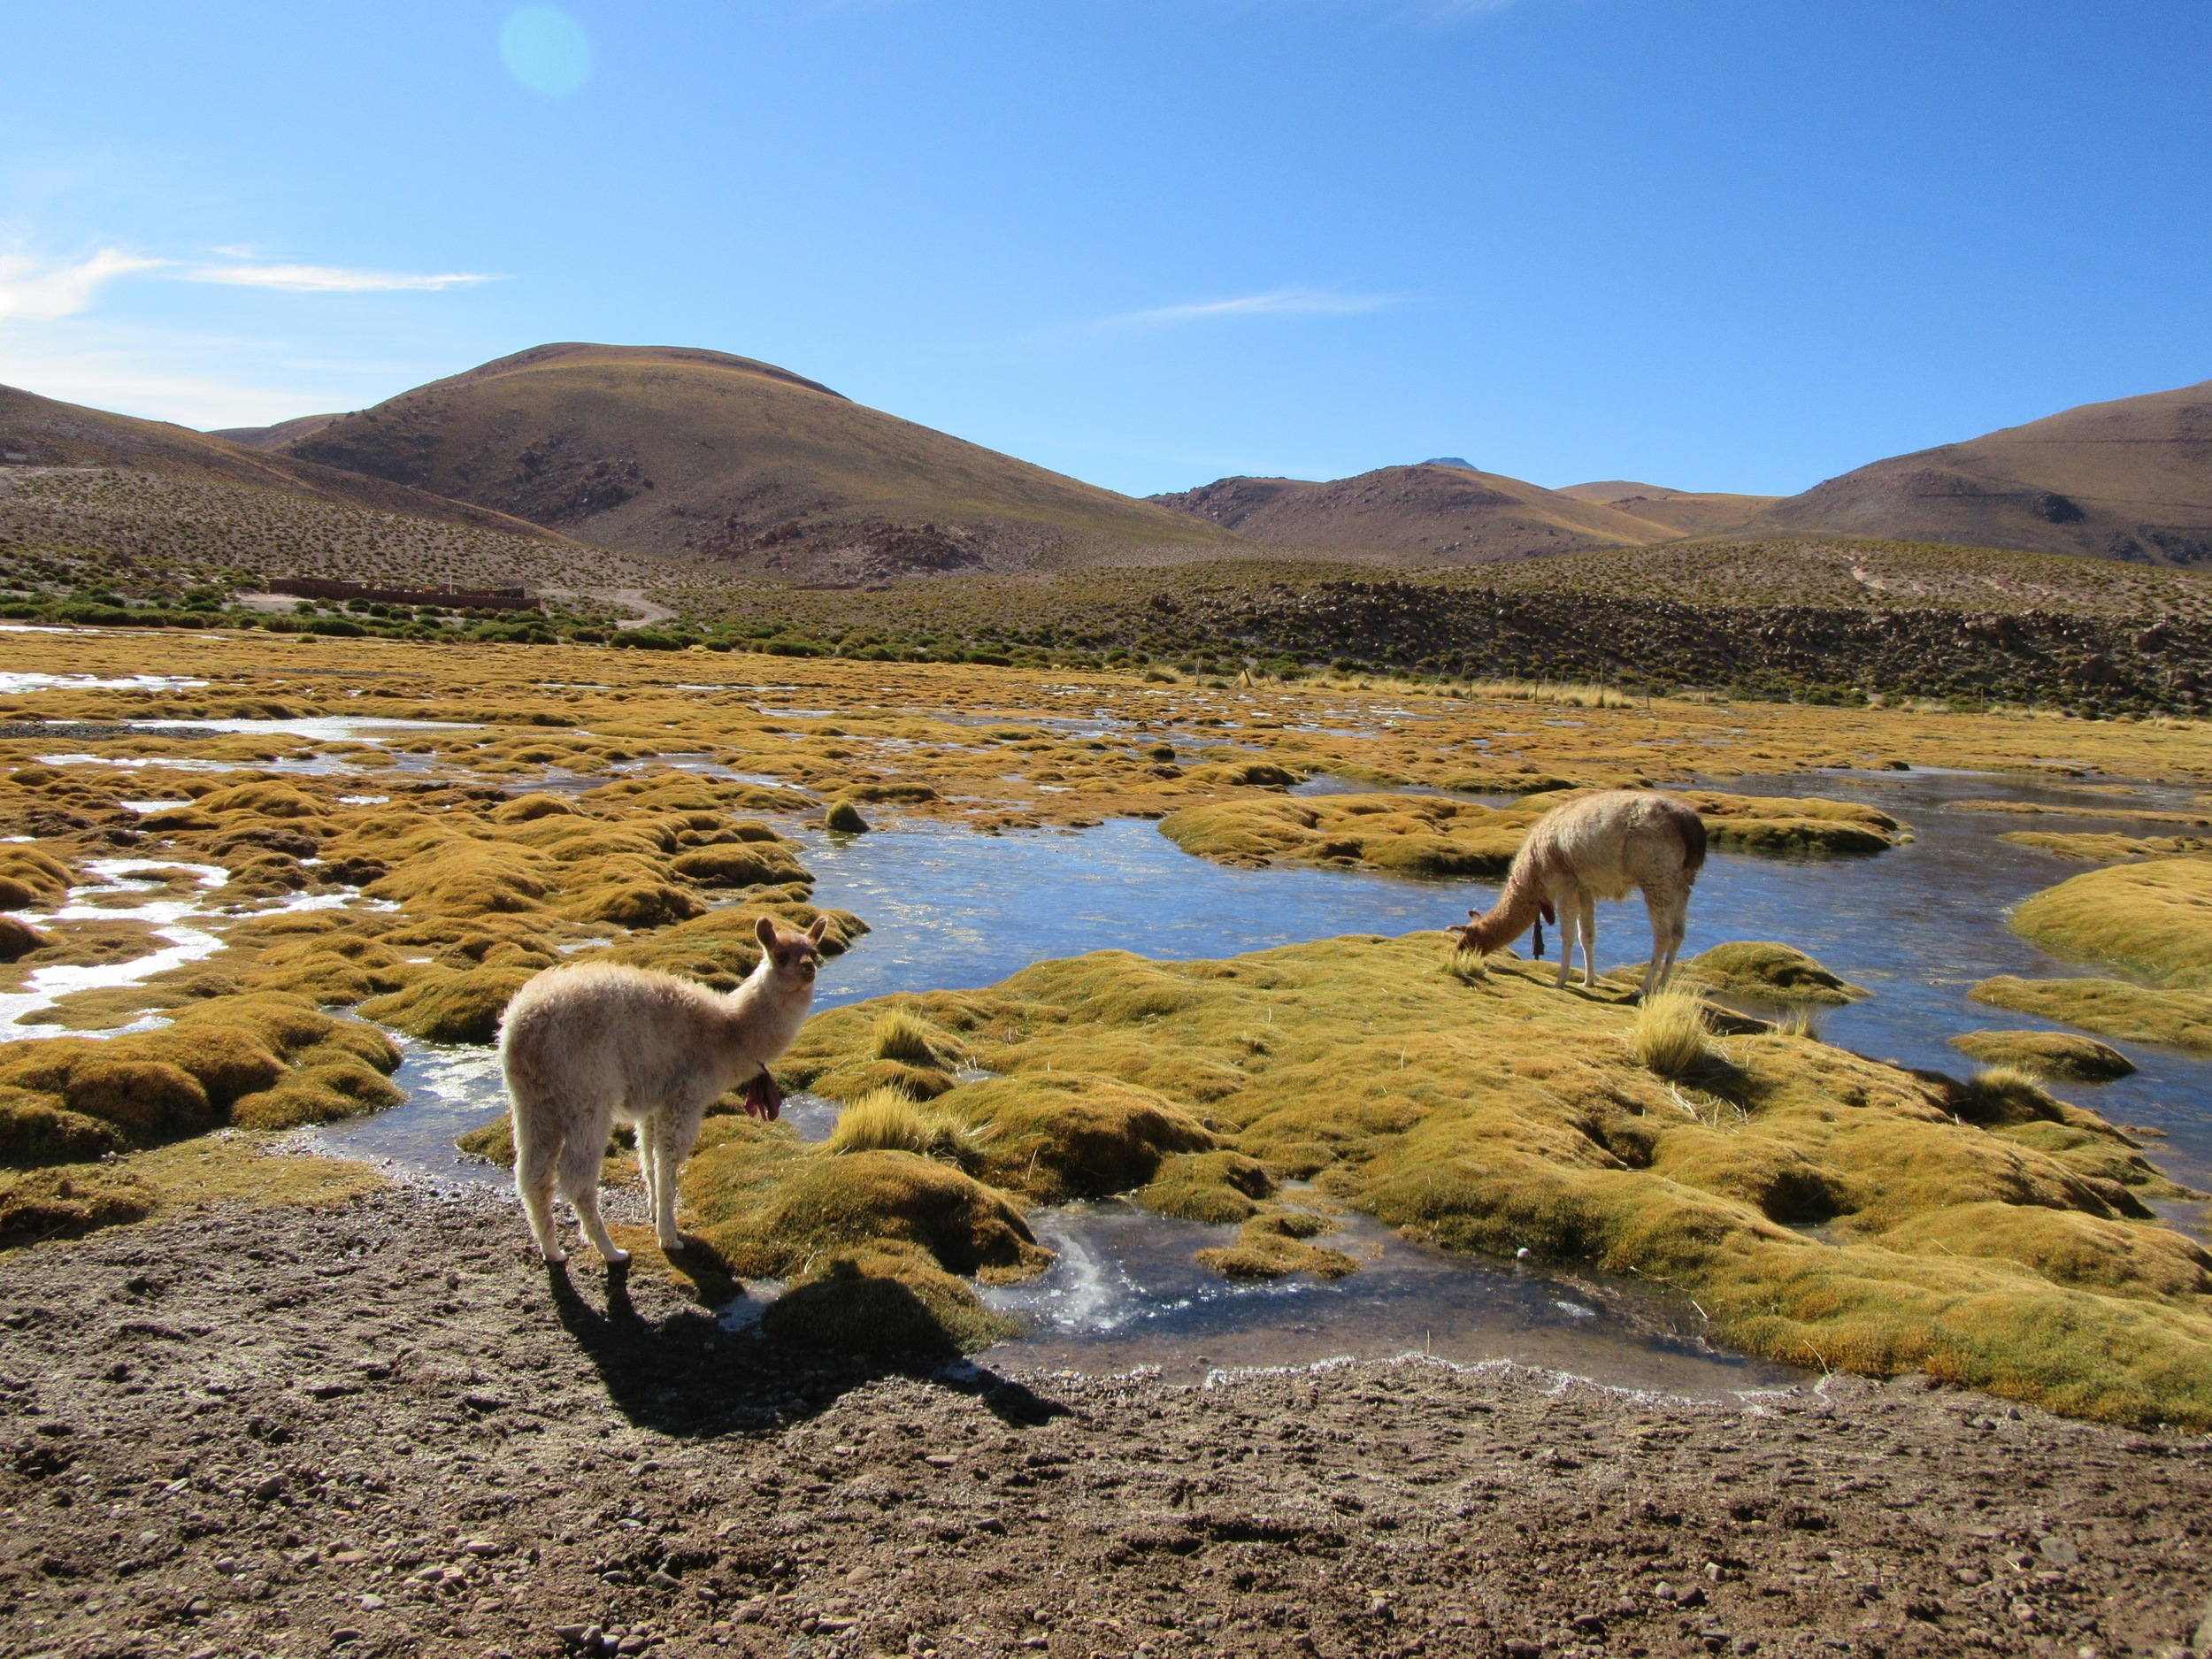 llamas grazing near the village of Tocoñao